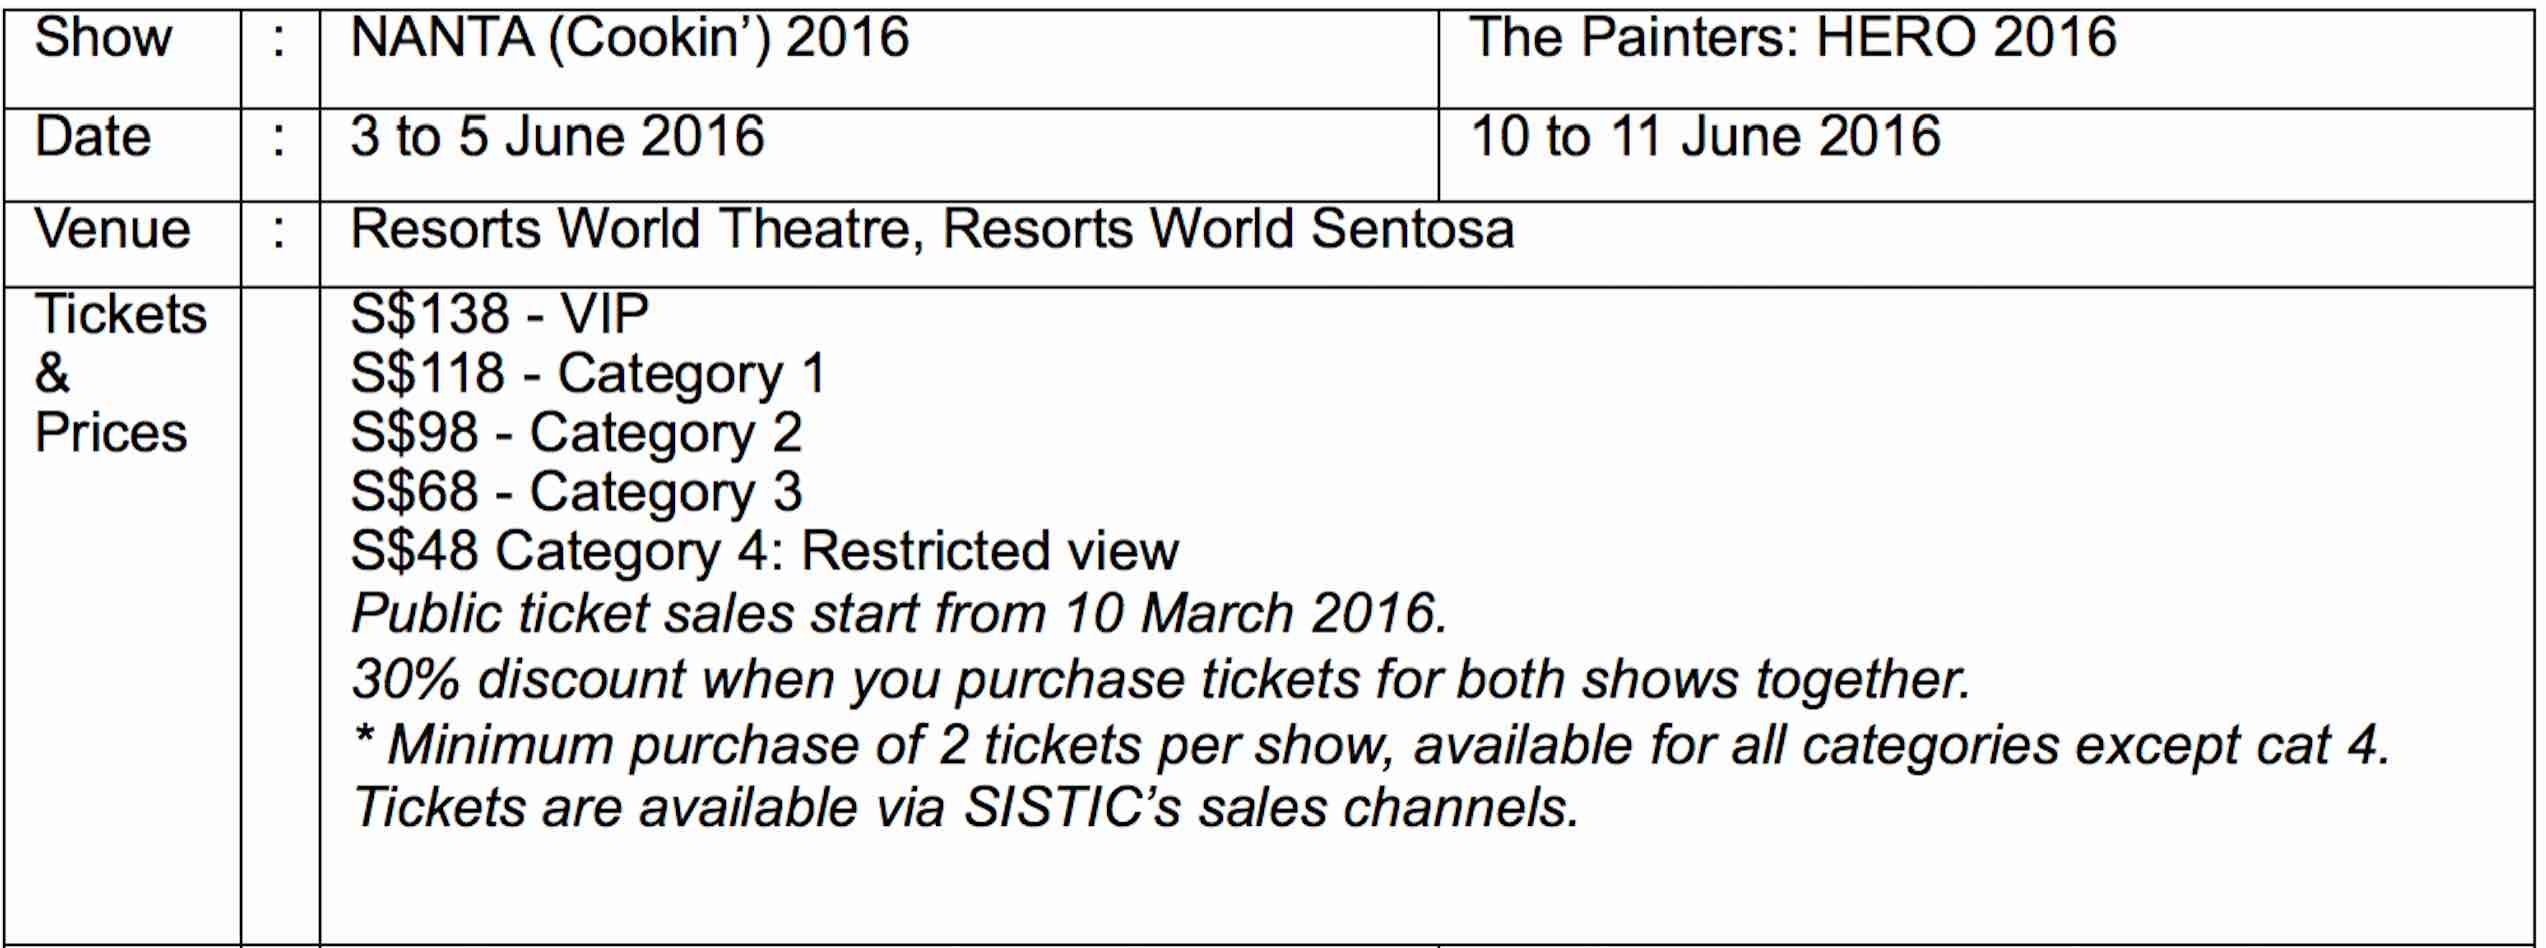 NANTA & The Painters Tickets Information - AspirantSG